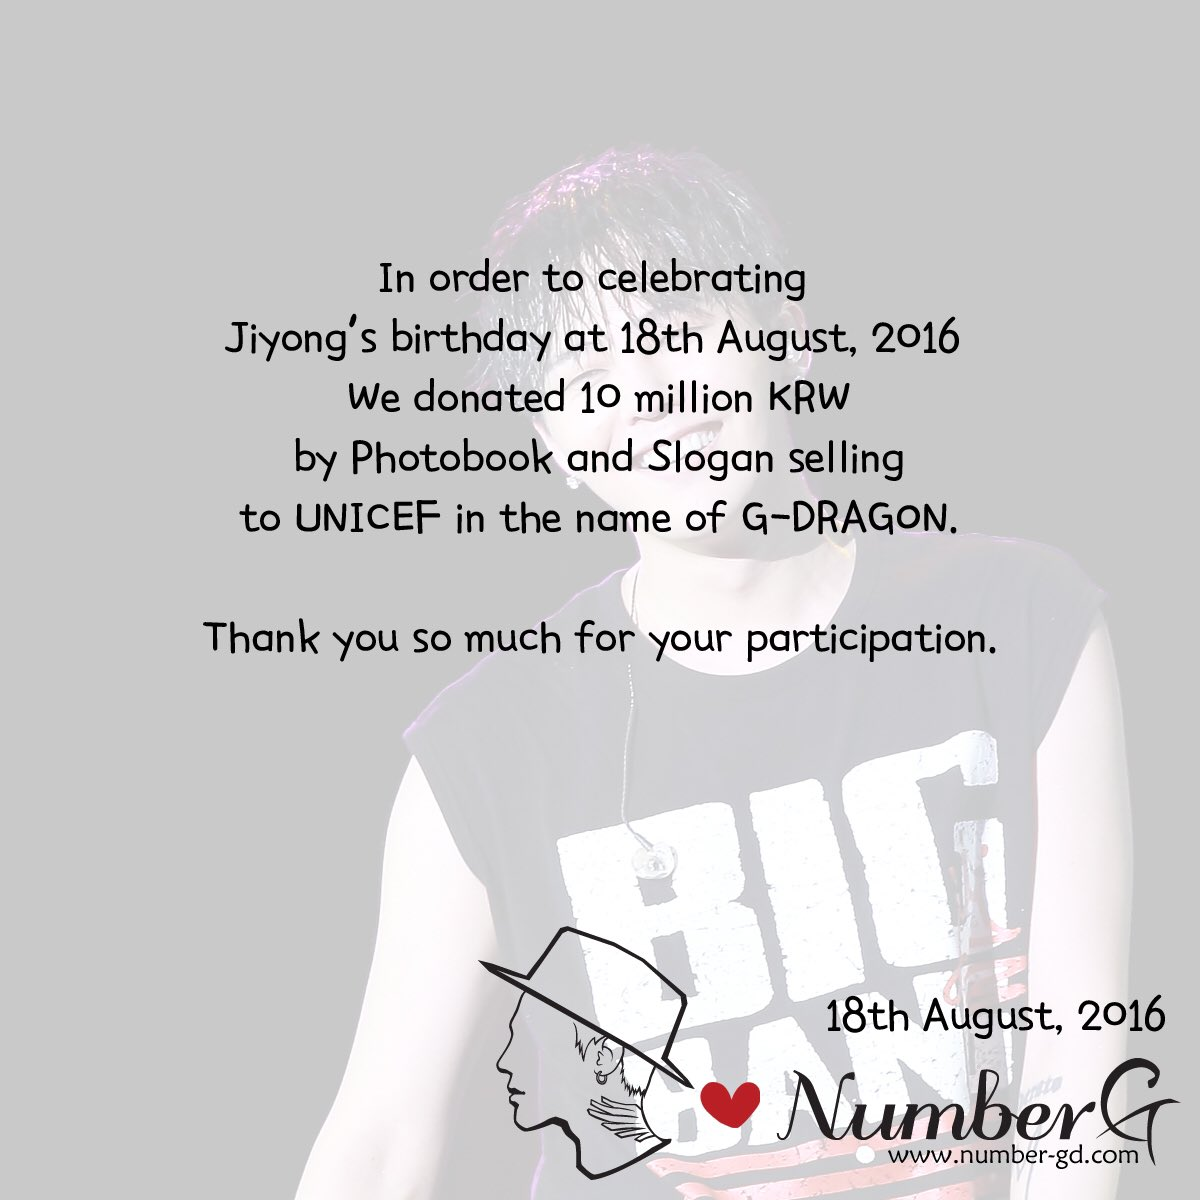 Number G On Twitter To Celebrate Gd S Bday We Donated 10 Million Krw By Pb And Slogan Ing Unicef In The Name Of Numberg